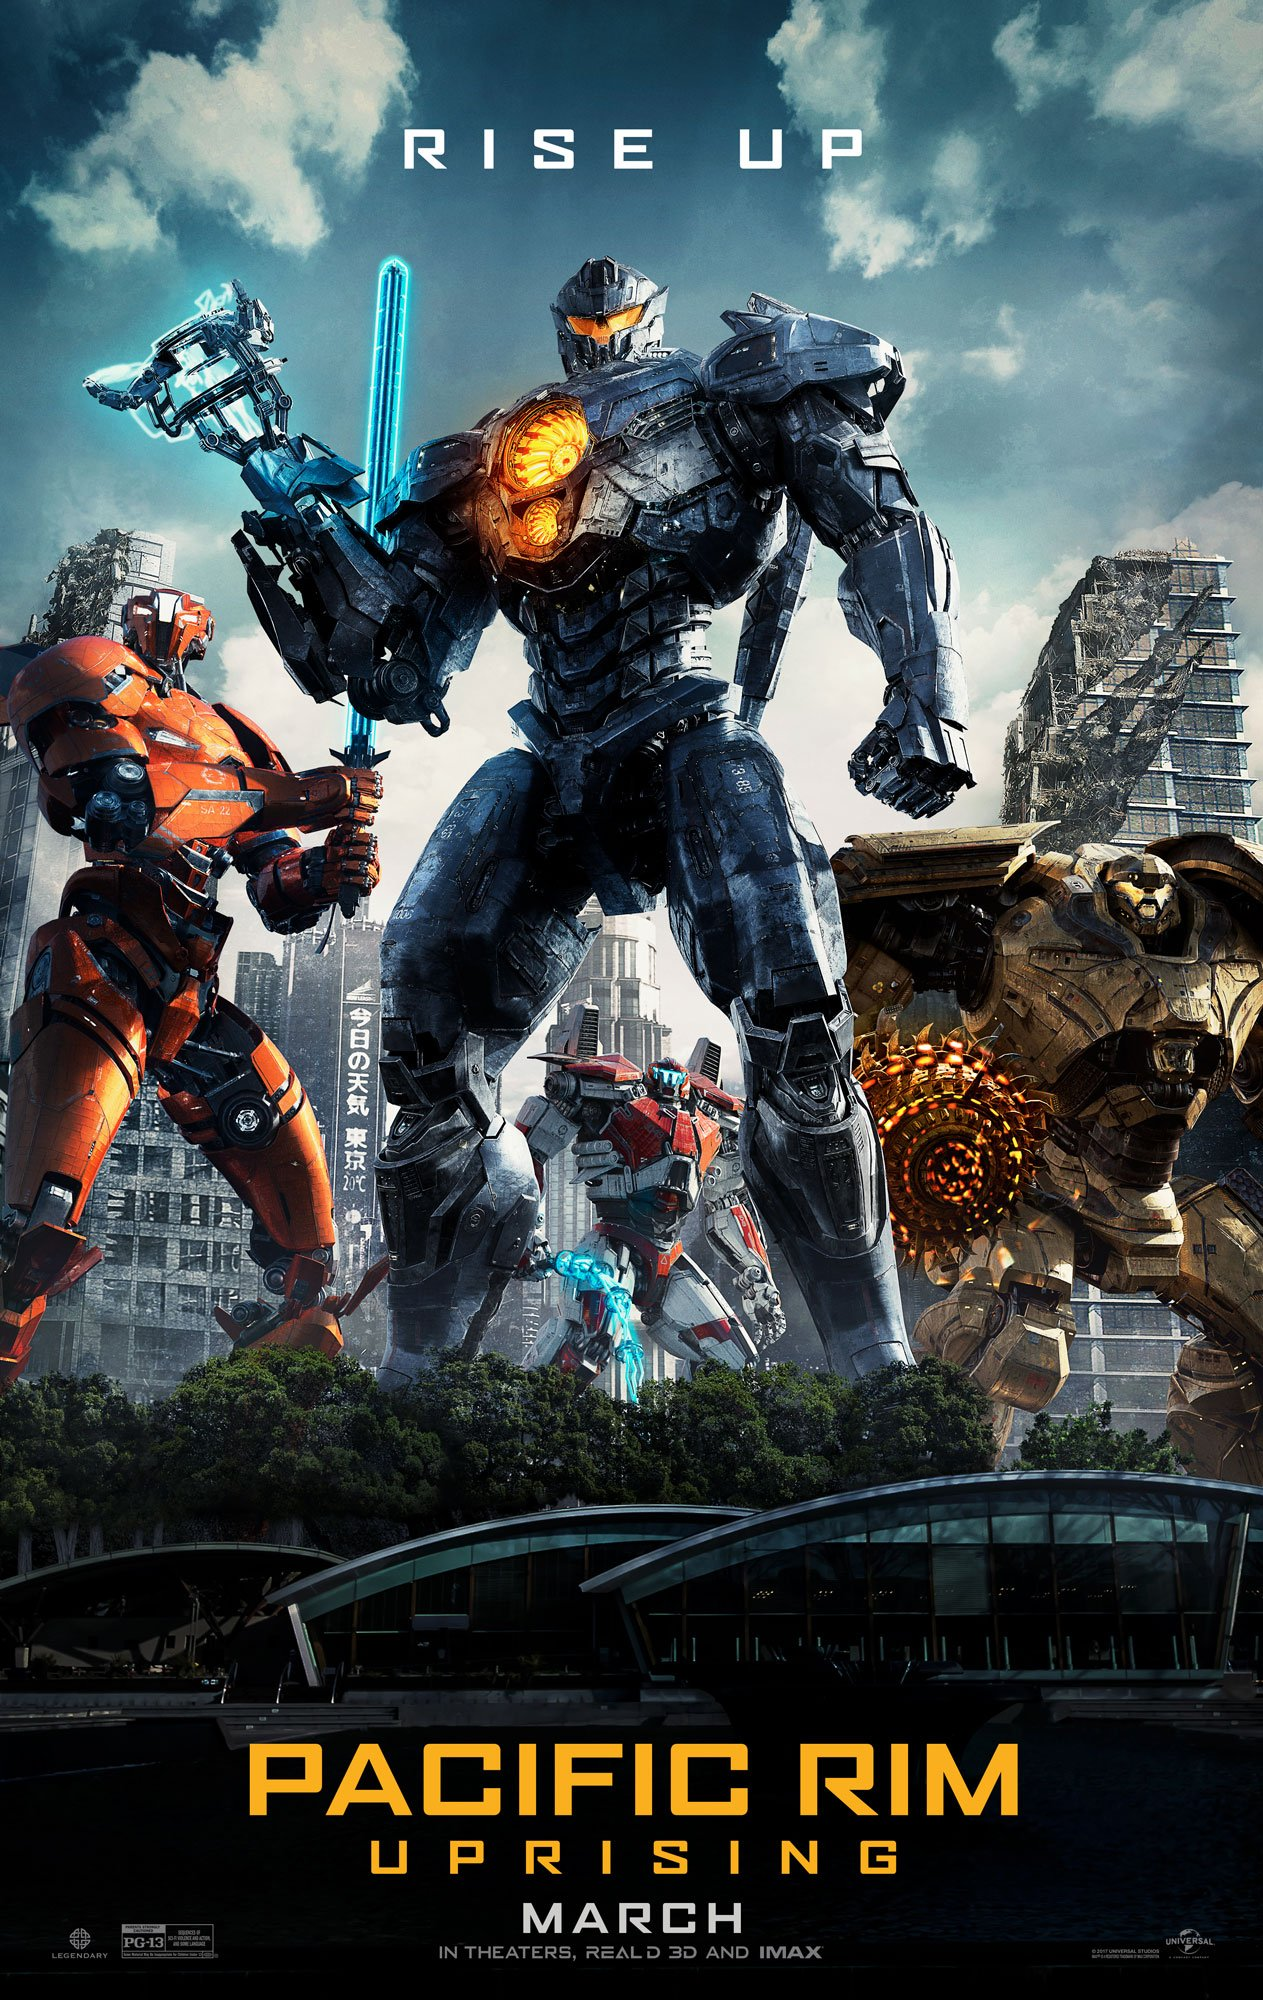 Pacific Rim Uprising   (2018) dir. Steven S. DeKnight Rated: PG-13 image:©2018  Universal Pictures